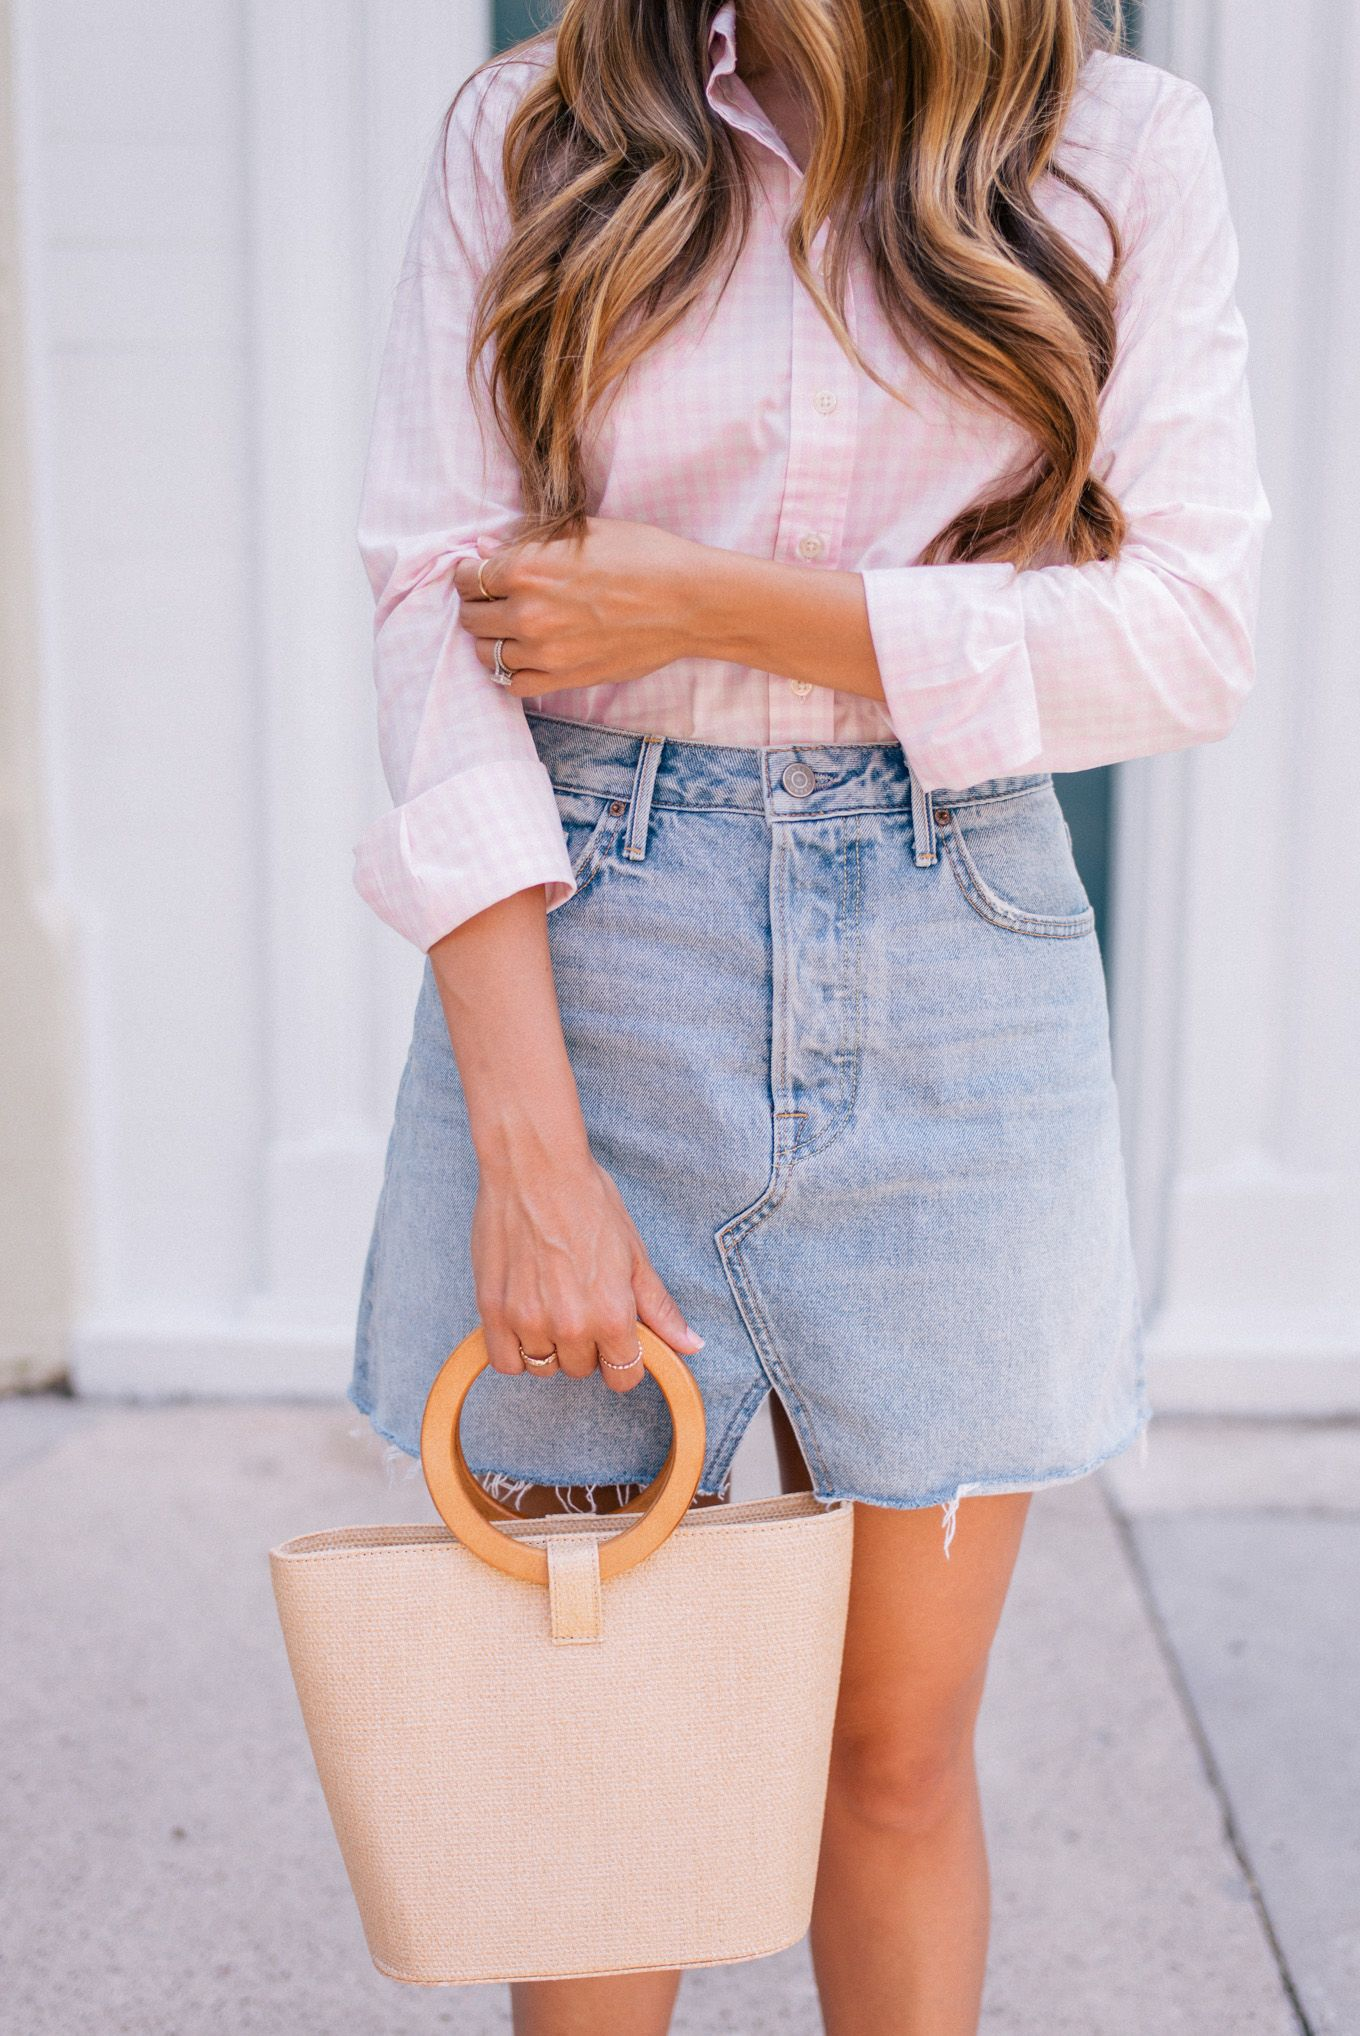 366d87ea48e Gal Meets Glam 3 Key Pieces To Pack For Labor Day Weekend - The Shirt